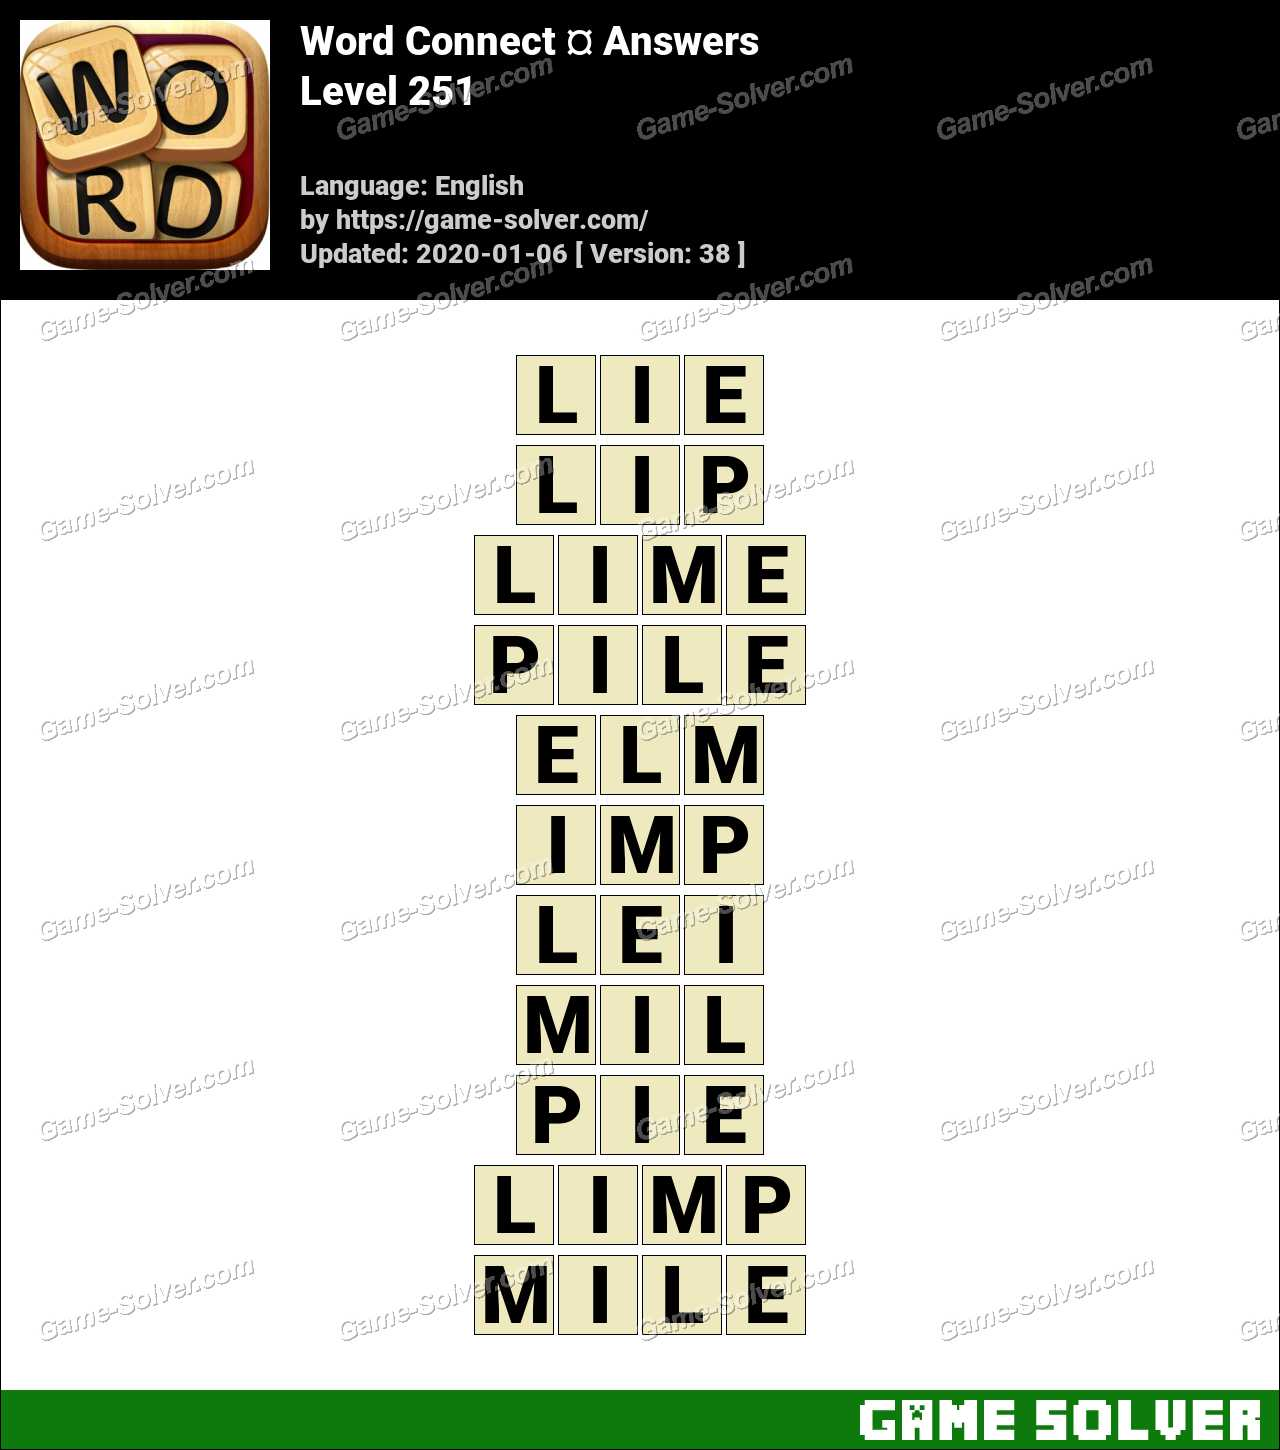 Word Connect Level 251 Answers